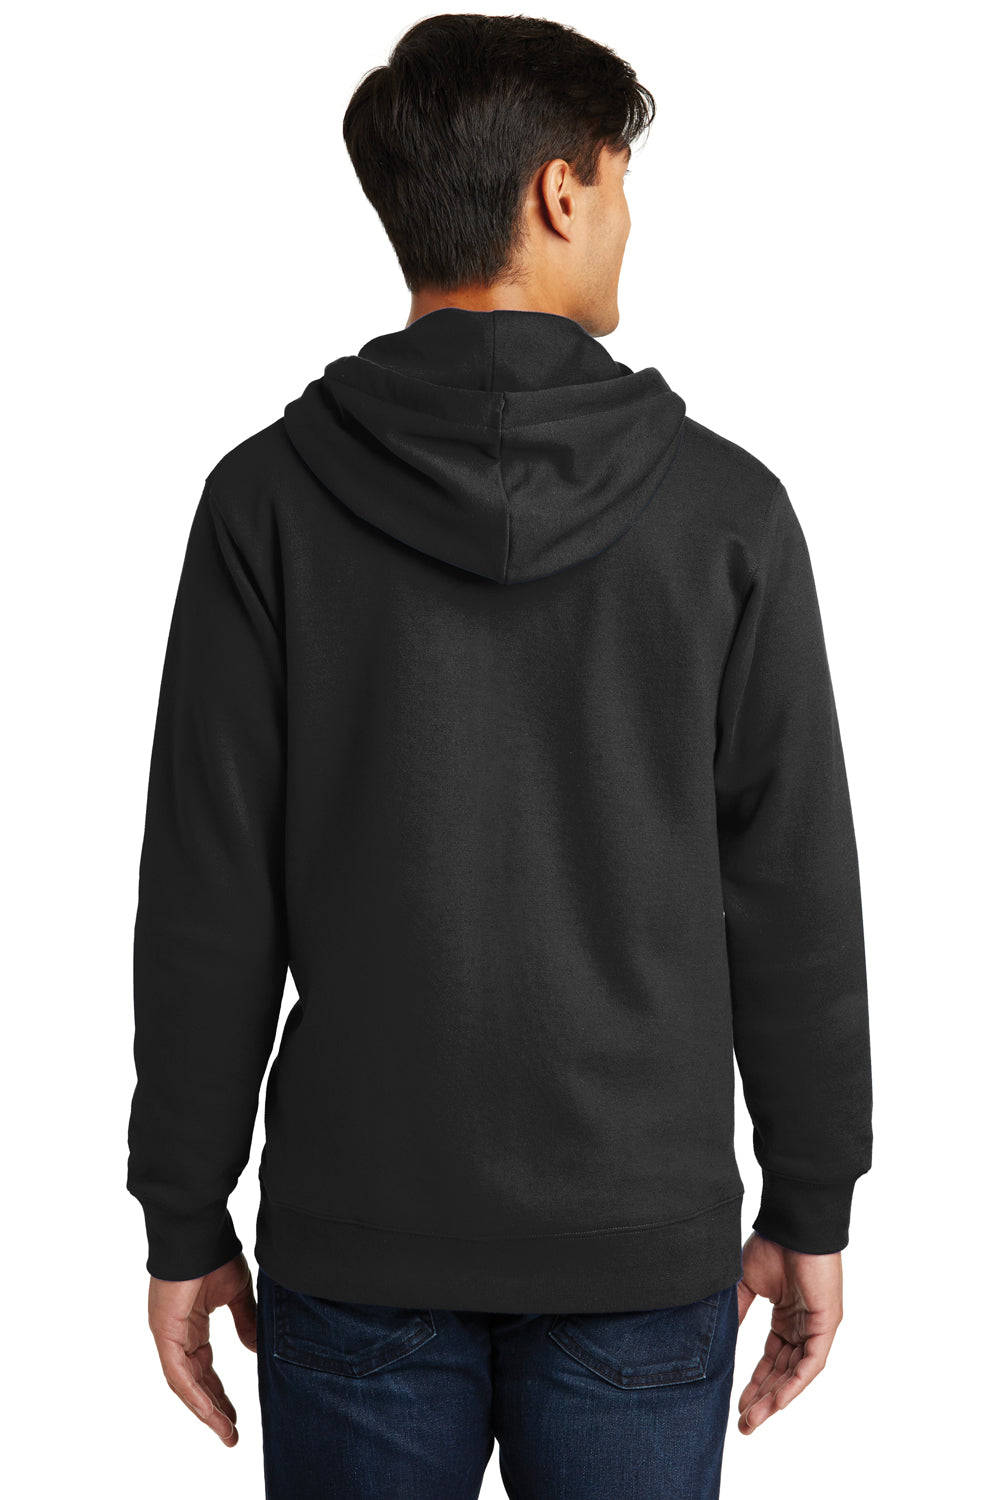 Port & Company PC850ZH Mens Fan Favorite Fleece Full Zip Hooded Sweatshirt Hoodie Black Back